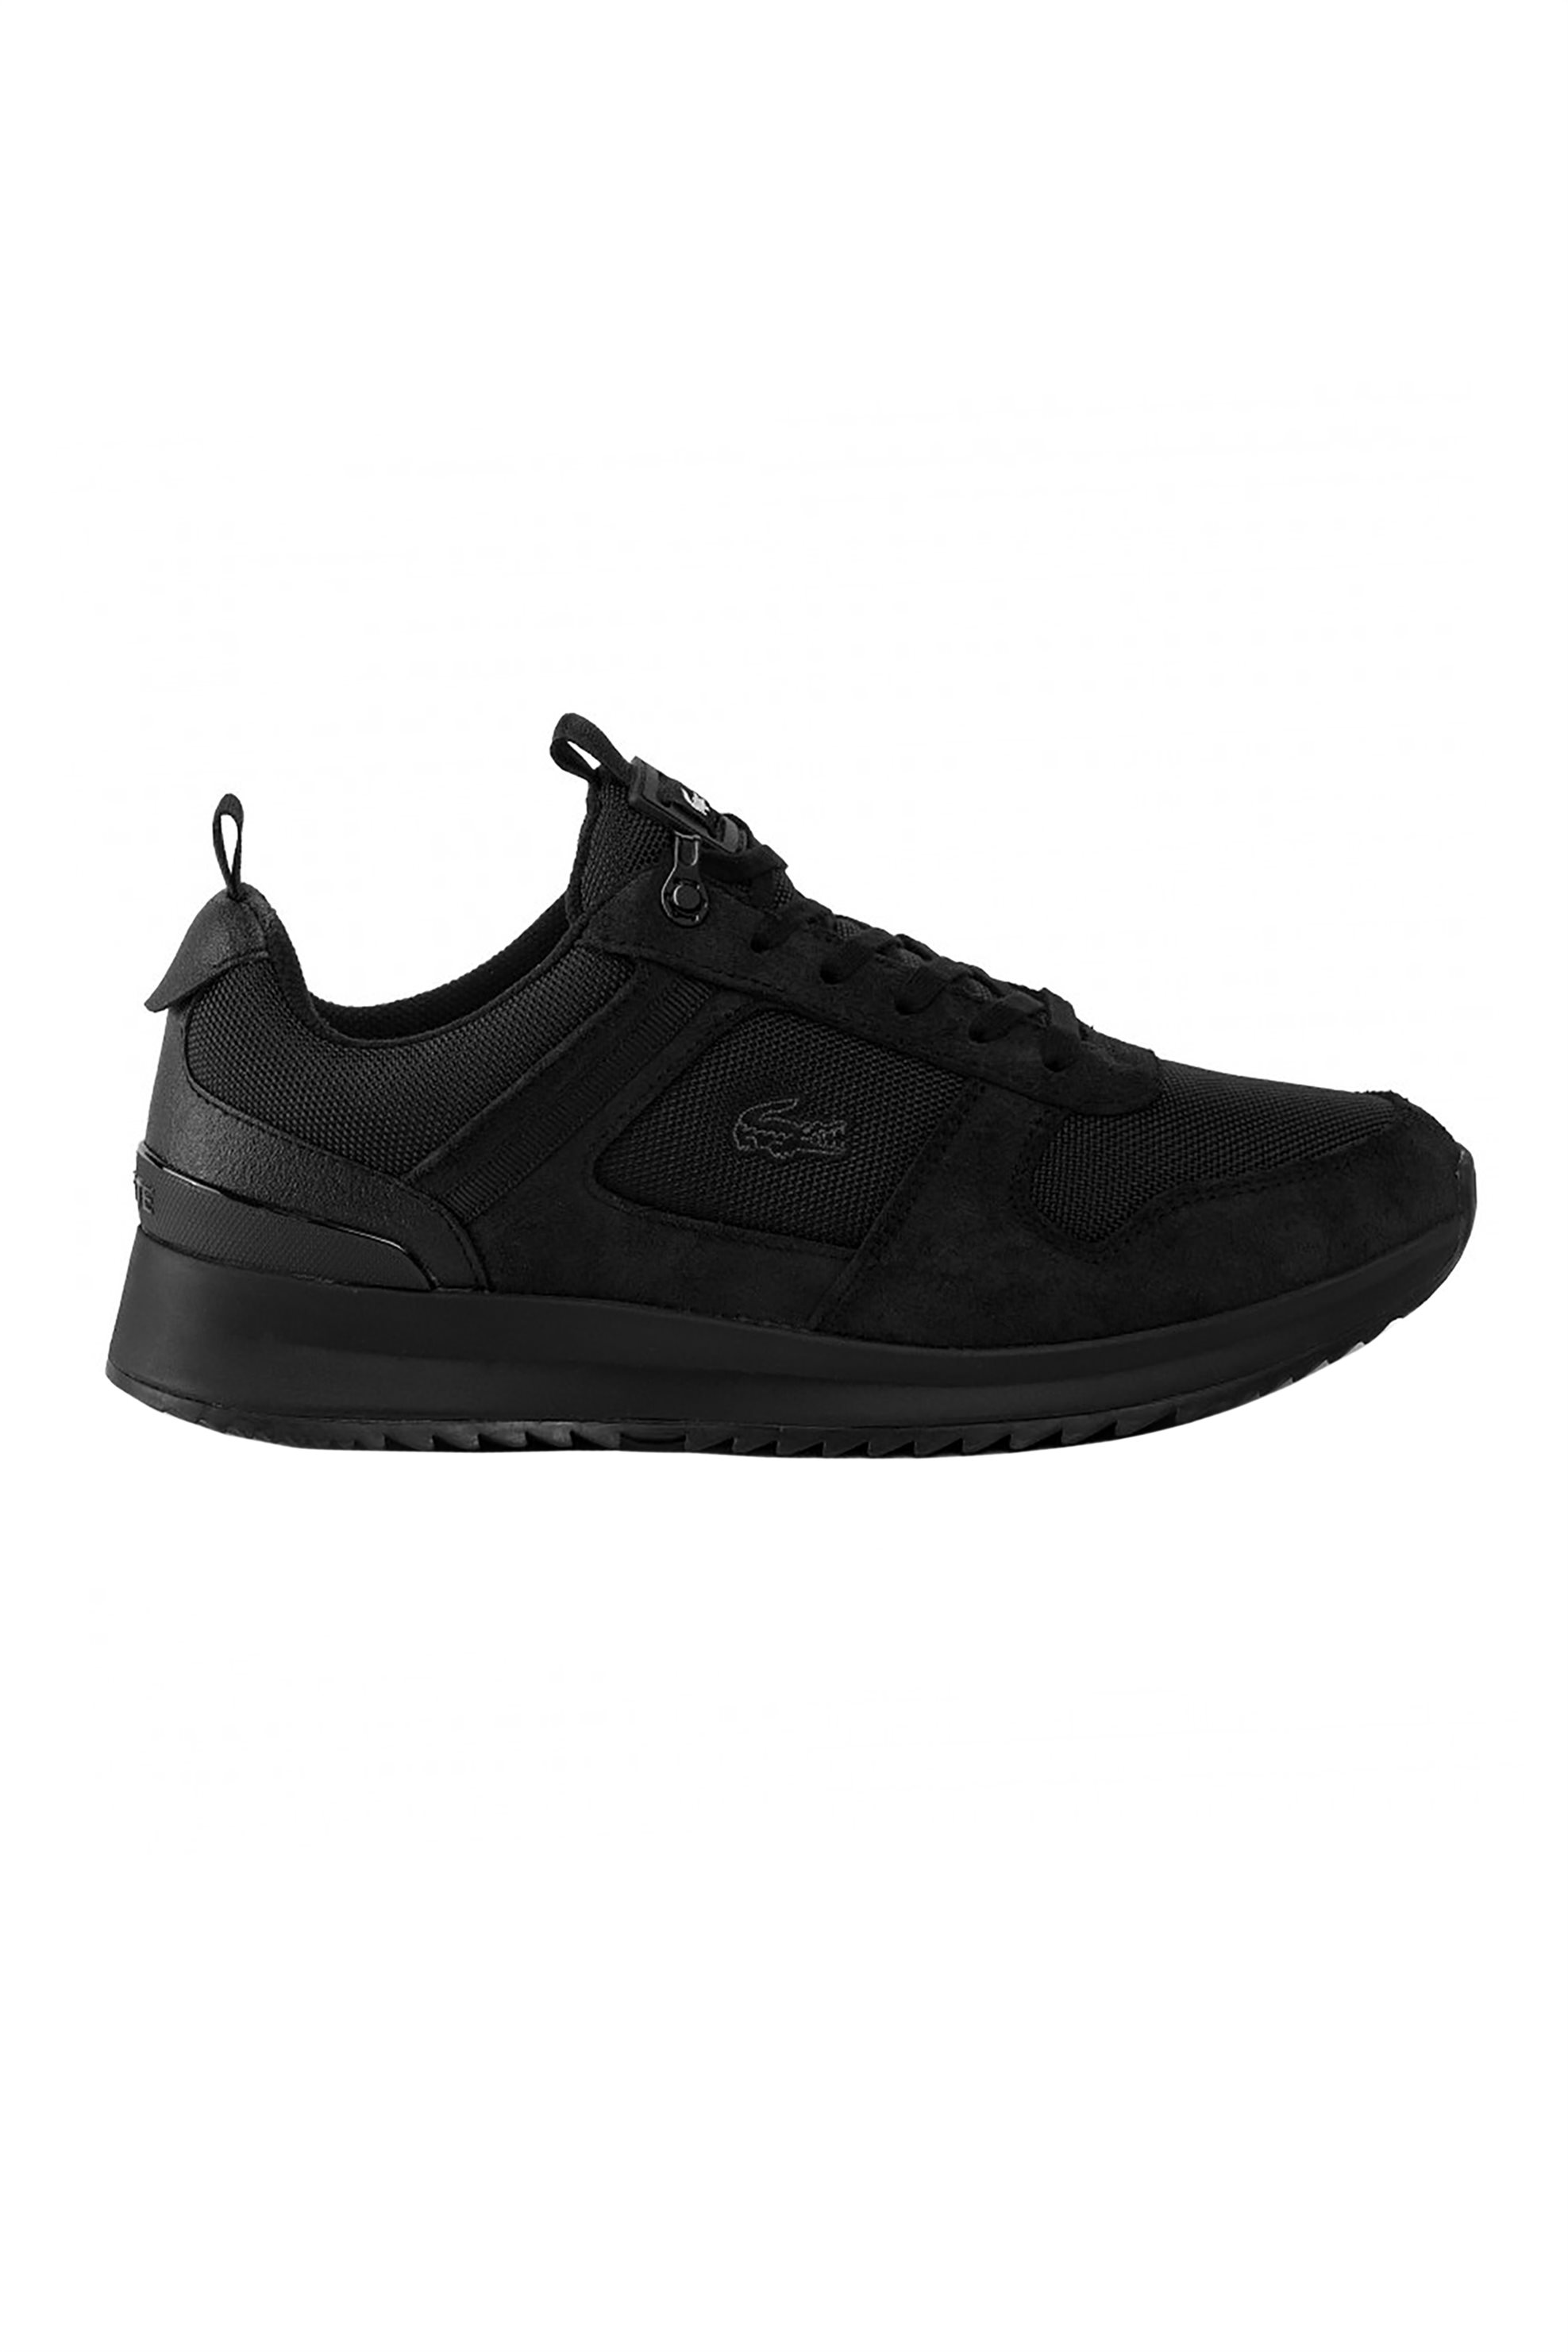 """Lacoste ανδρικά suede sneakers """"Joggeur"""" – 38SMA004102H – Καφέ"""